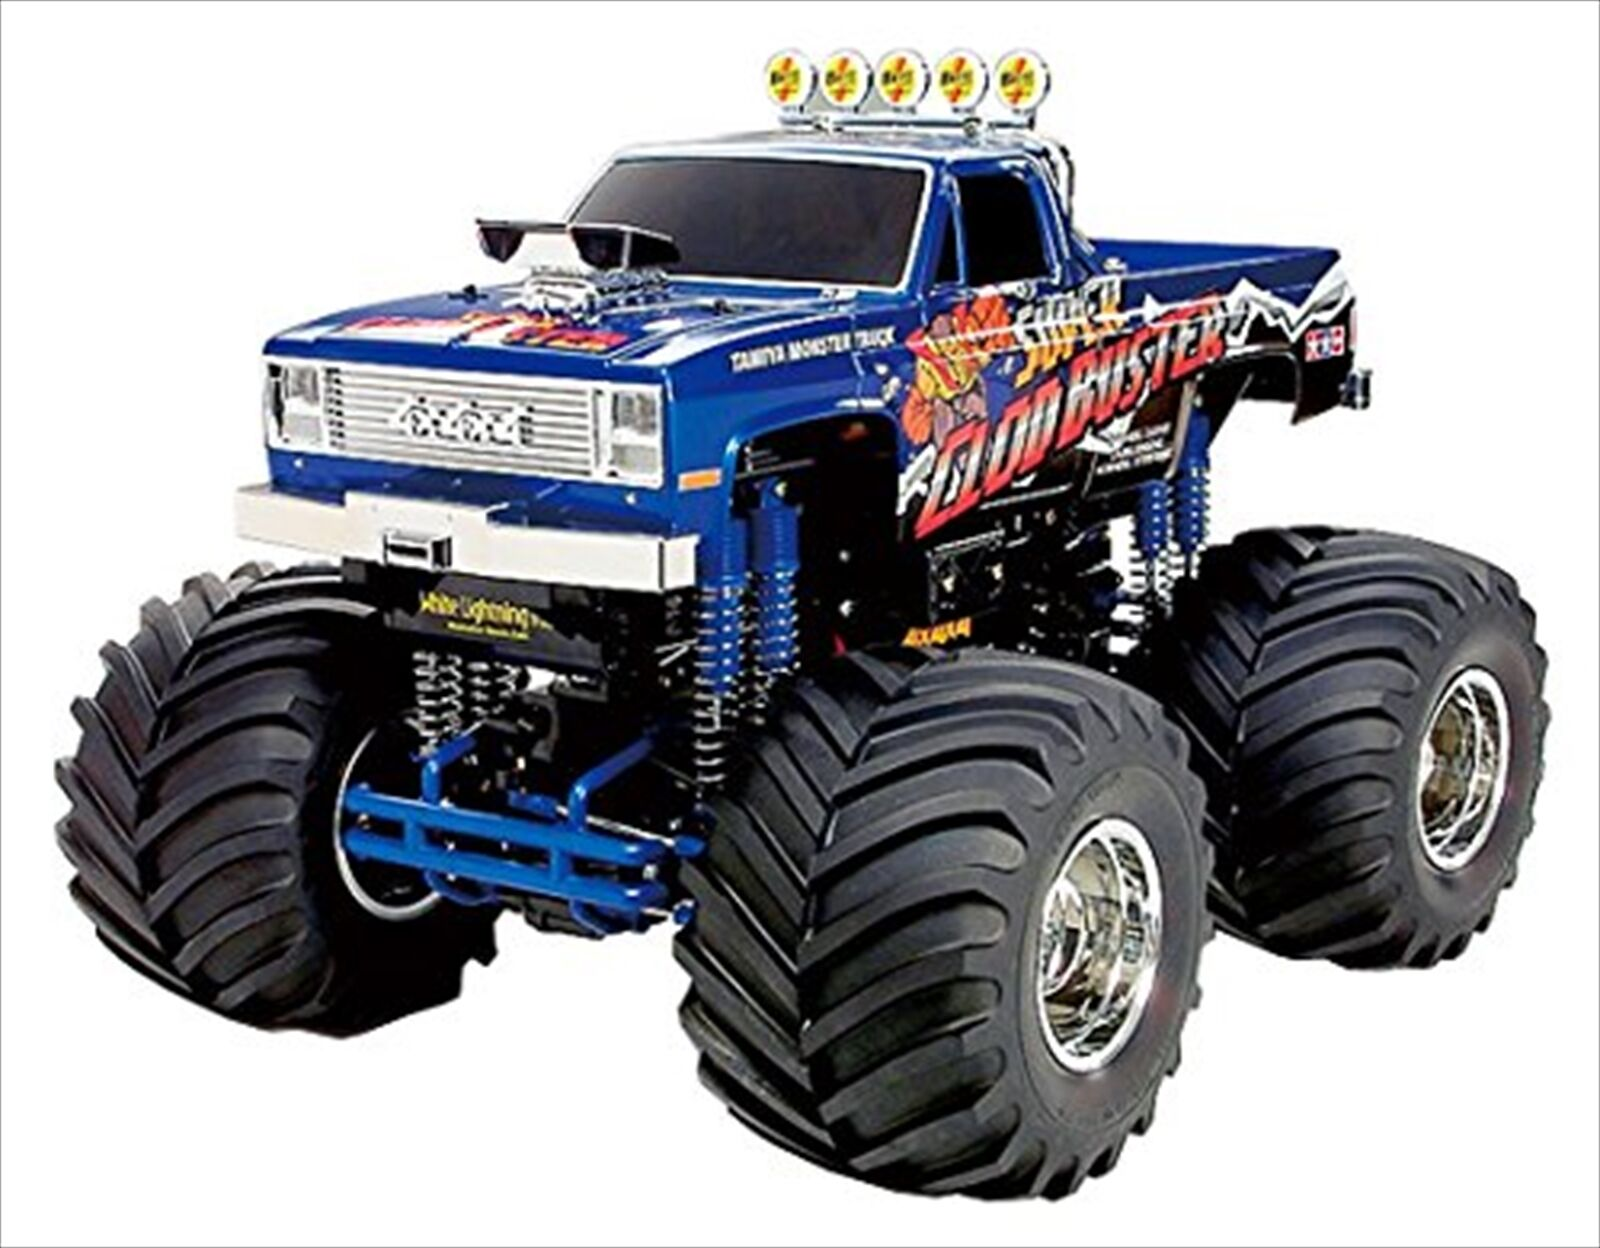 Tamiya 1 10 RC Car Series No.518 Super Clod Buster 4X4X4 2012 Off-Road 58518